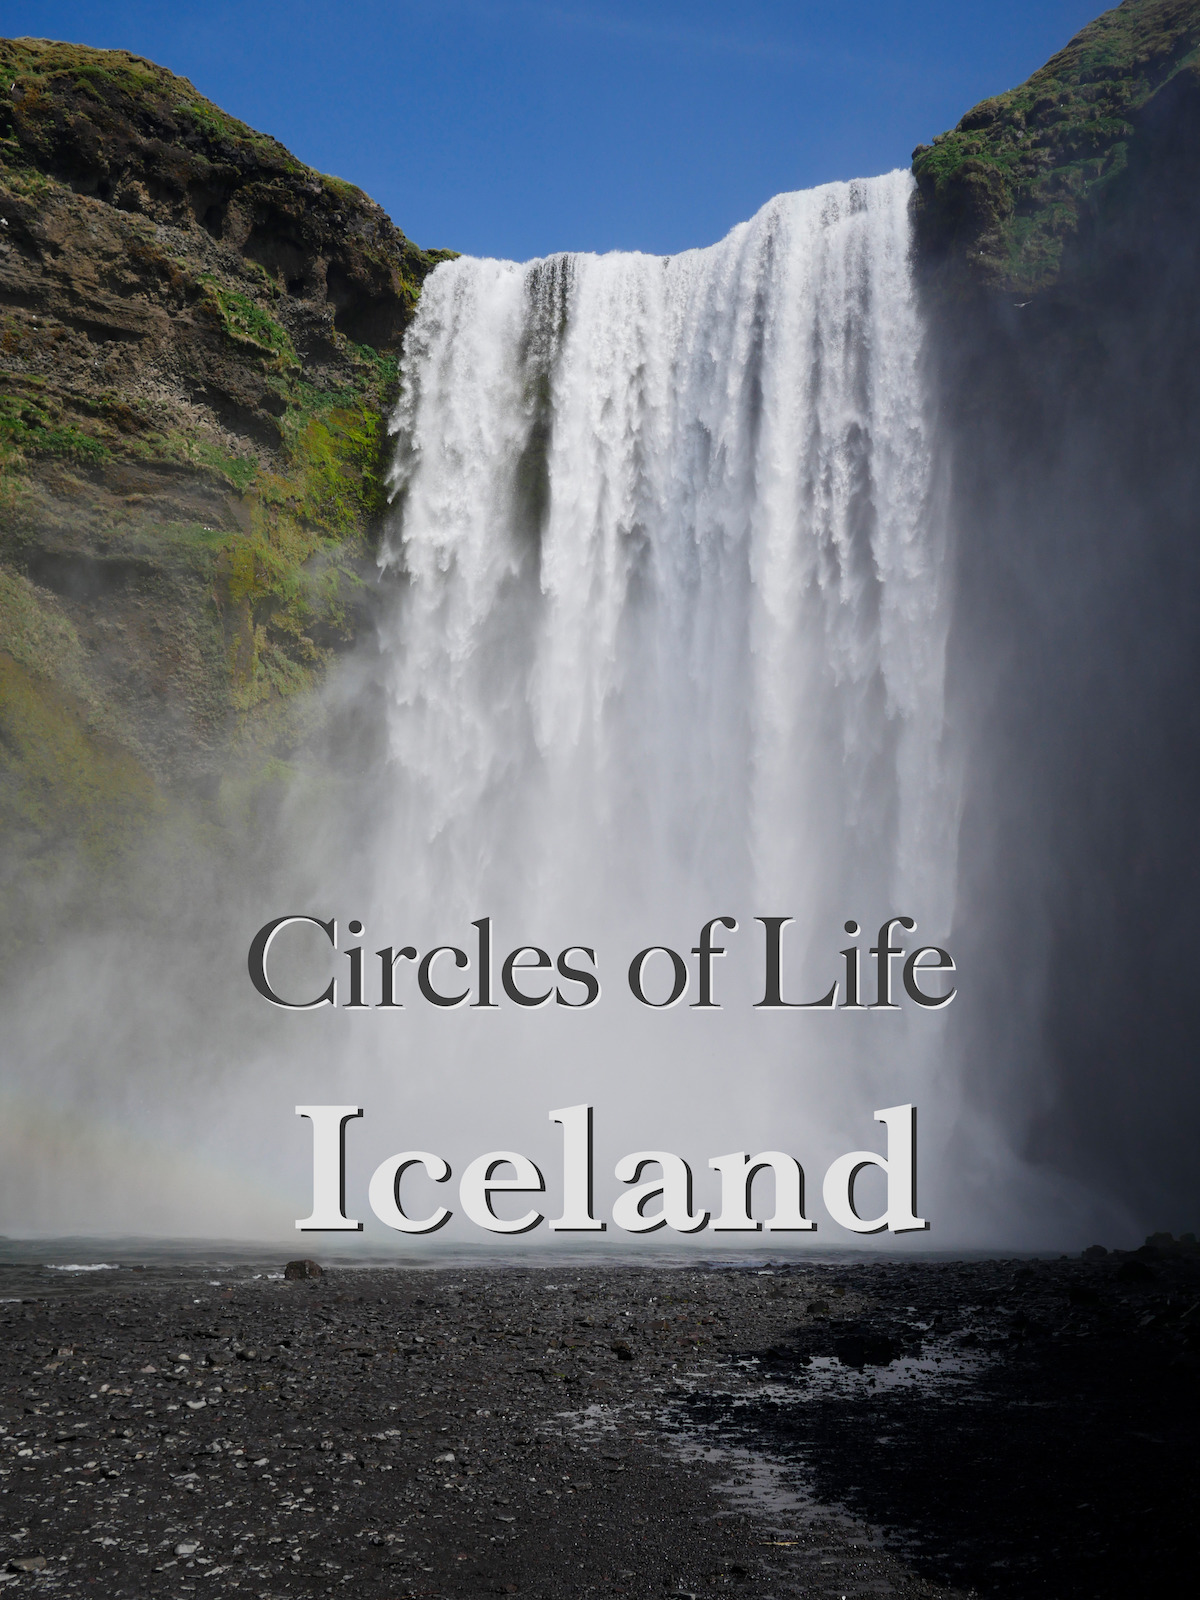 Circles of Life - Iceland